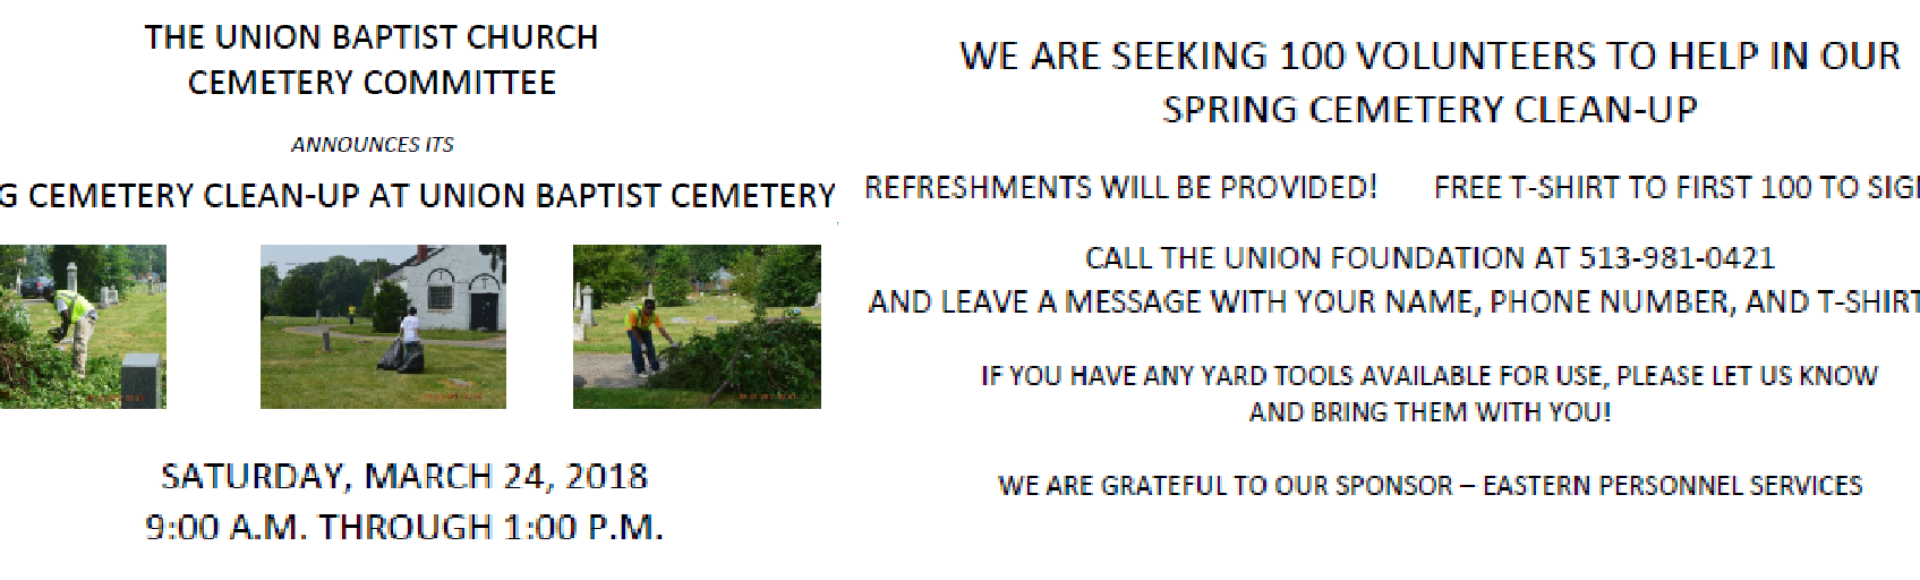 Spring Cemetery Cleanup 2018